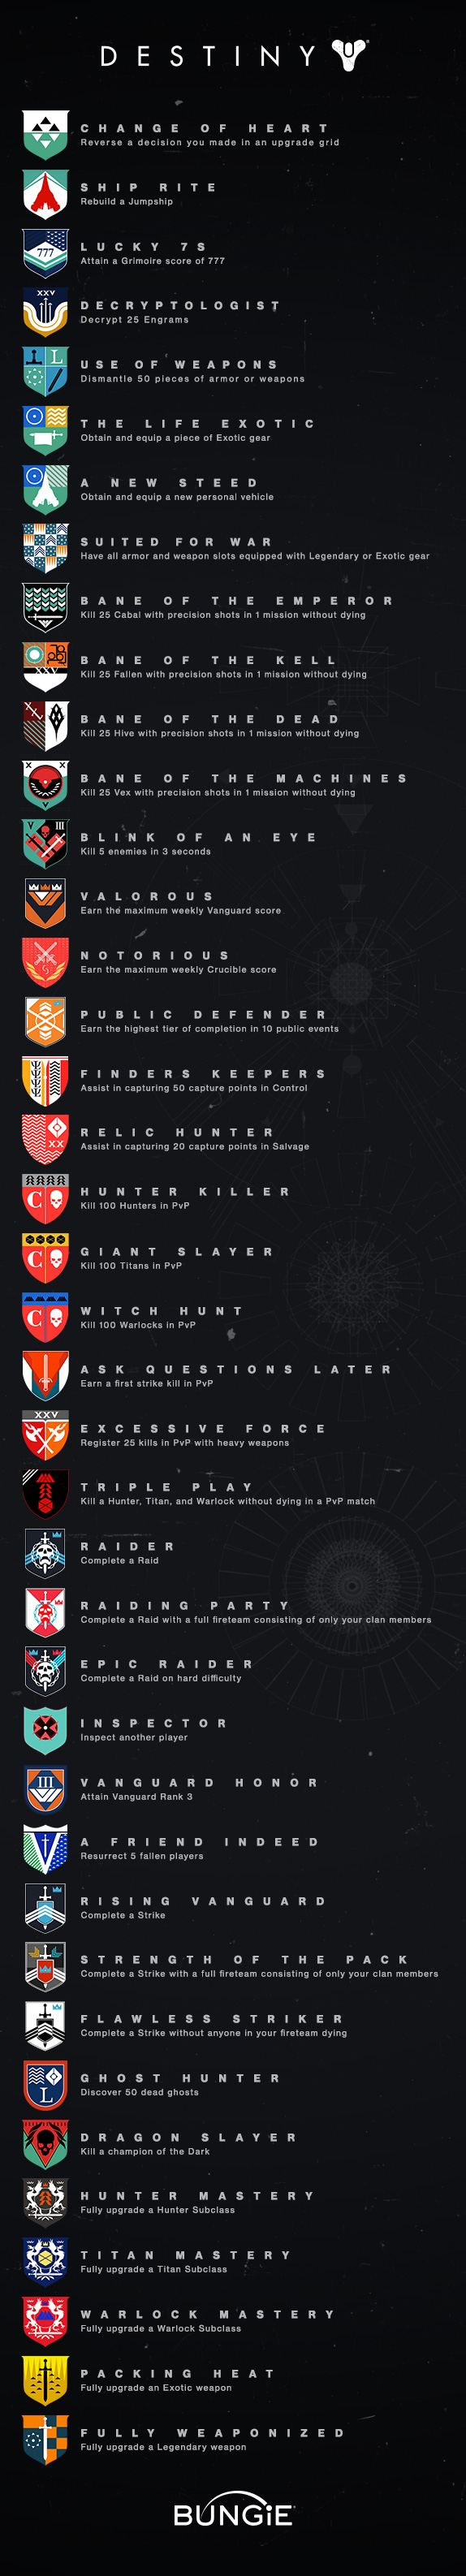 Destiny Sony PlayStation Trophies & Xbox Achievements